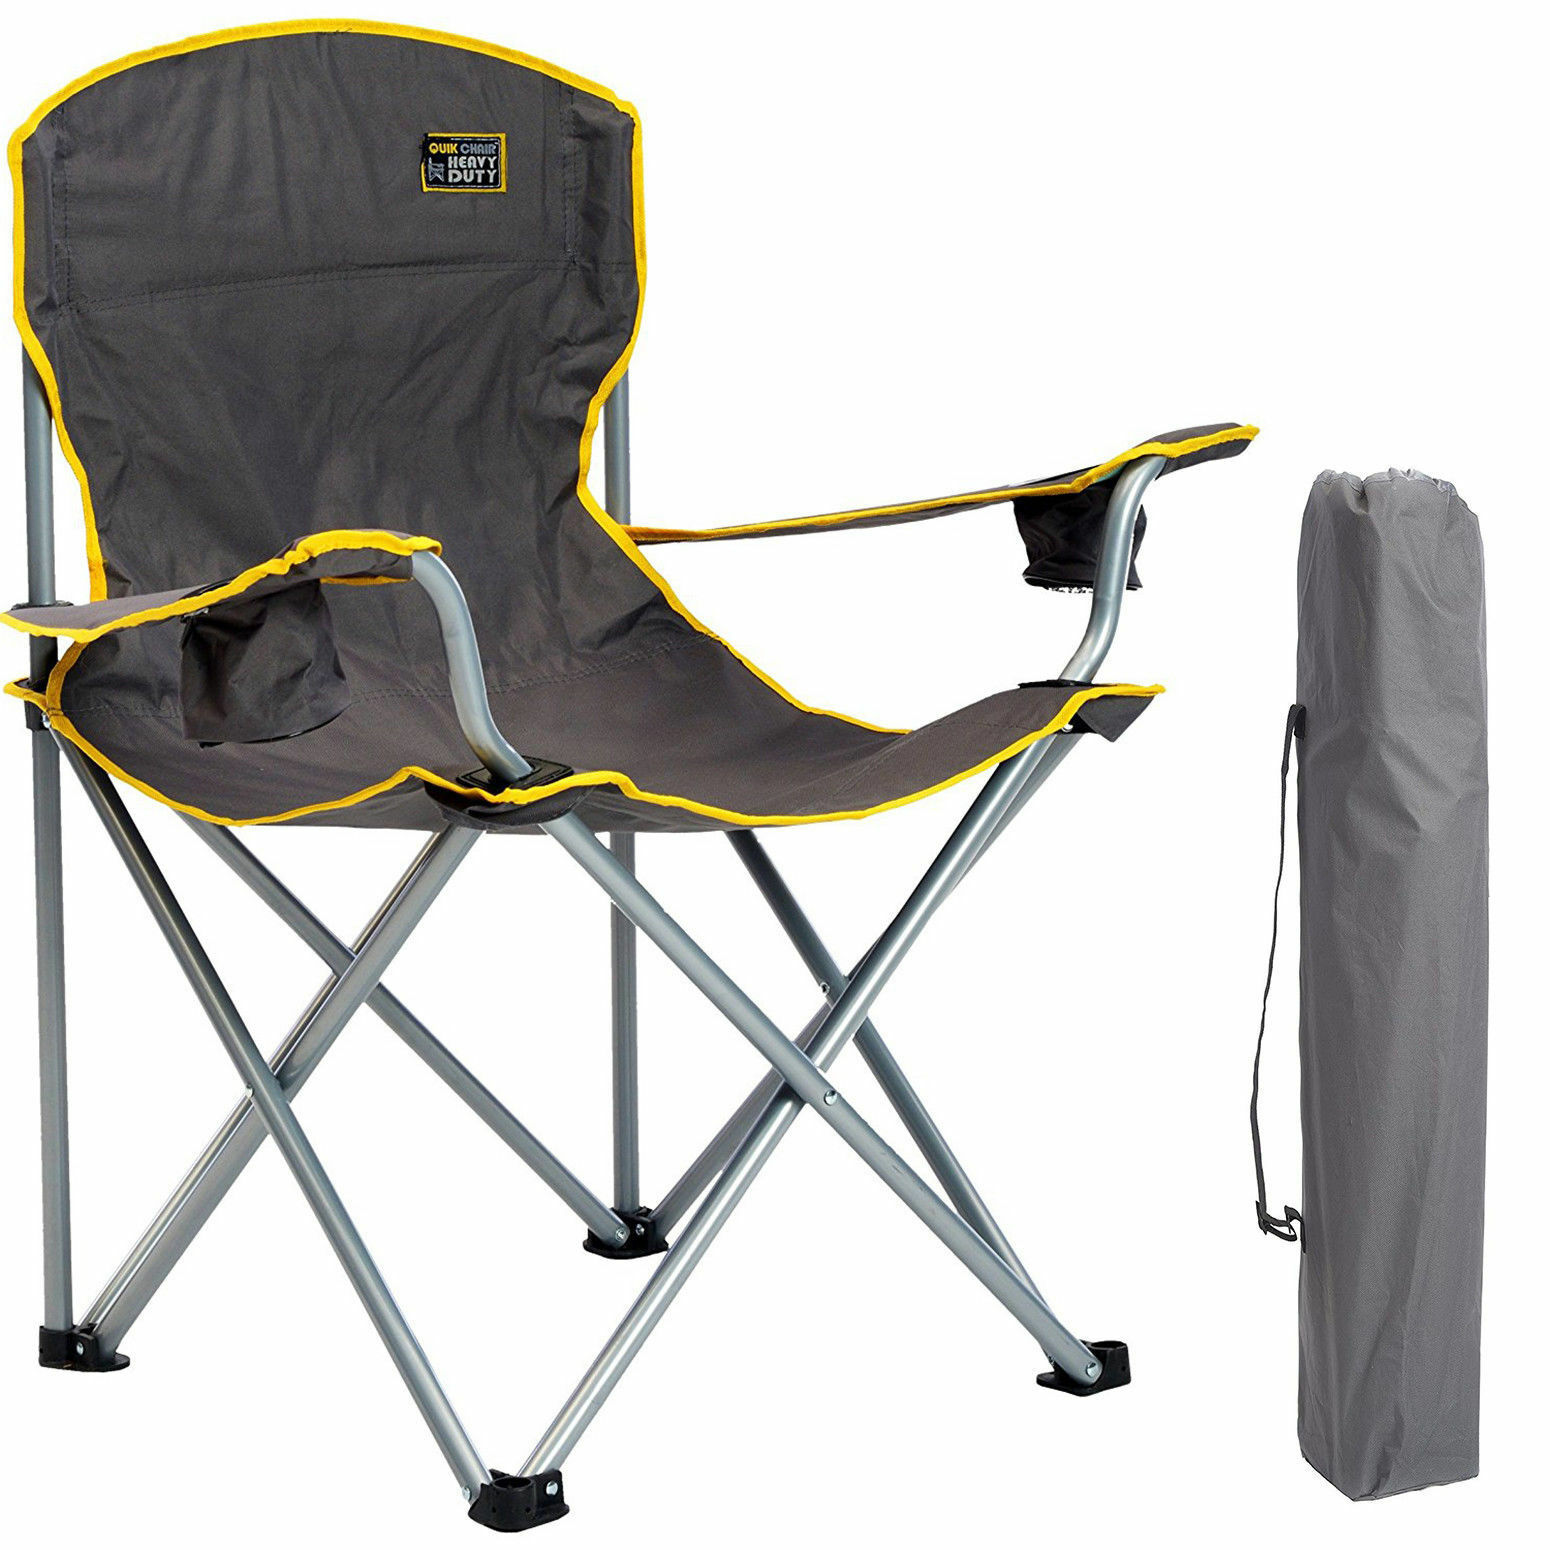 Heavy Duty Big  & Tall Outdoor Oversized XL Chair 500 Pds - Camping, Fishing, Ect  fashionable